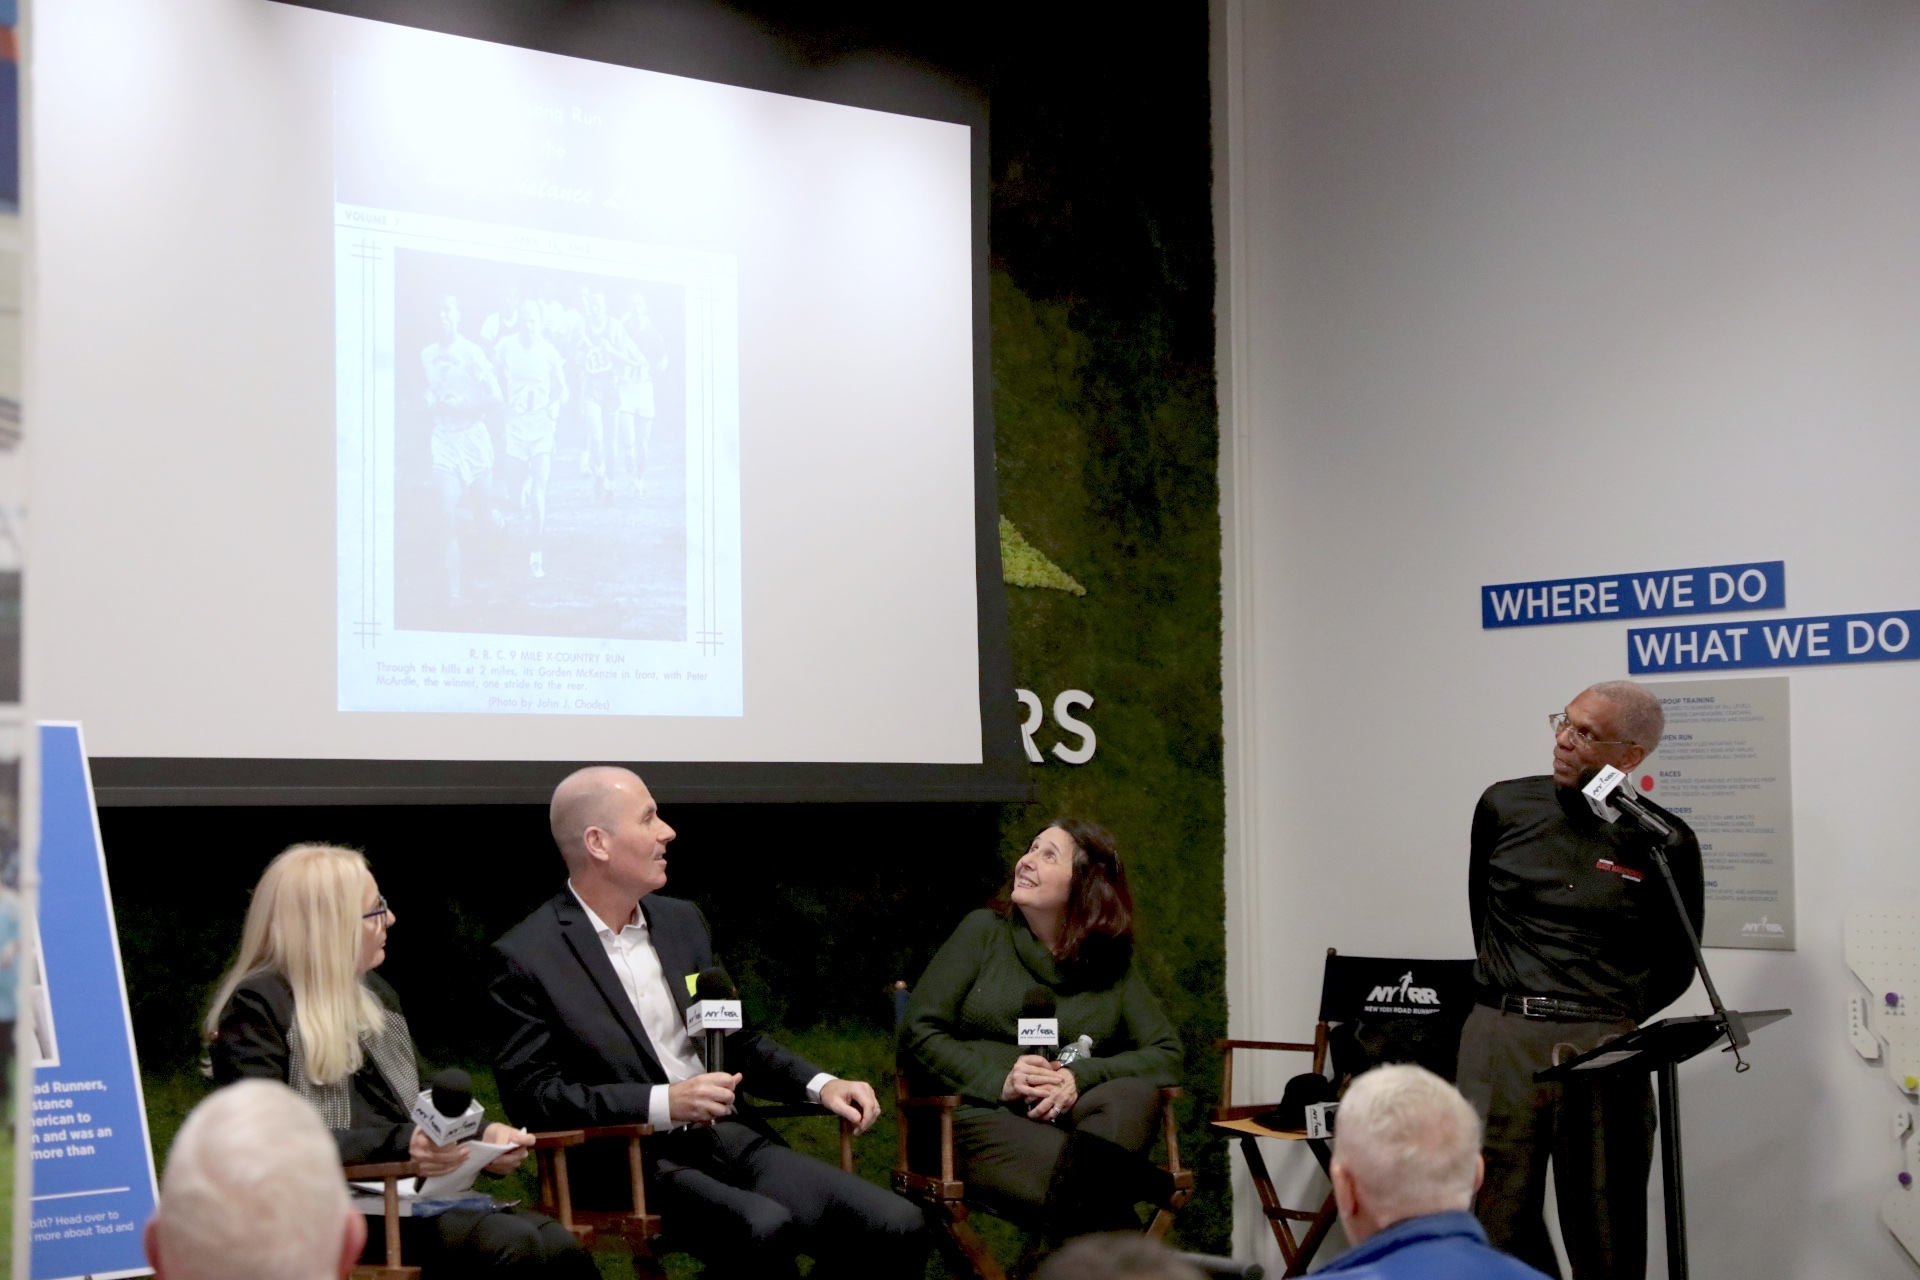 A panel discussion at the NYRR RUNCENTER, with Bonnie Ross, Ed Burns, Maeve Vinci, and Gary Corbitt